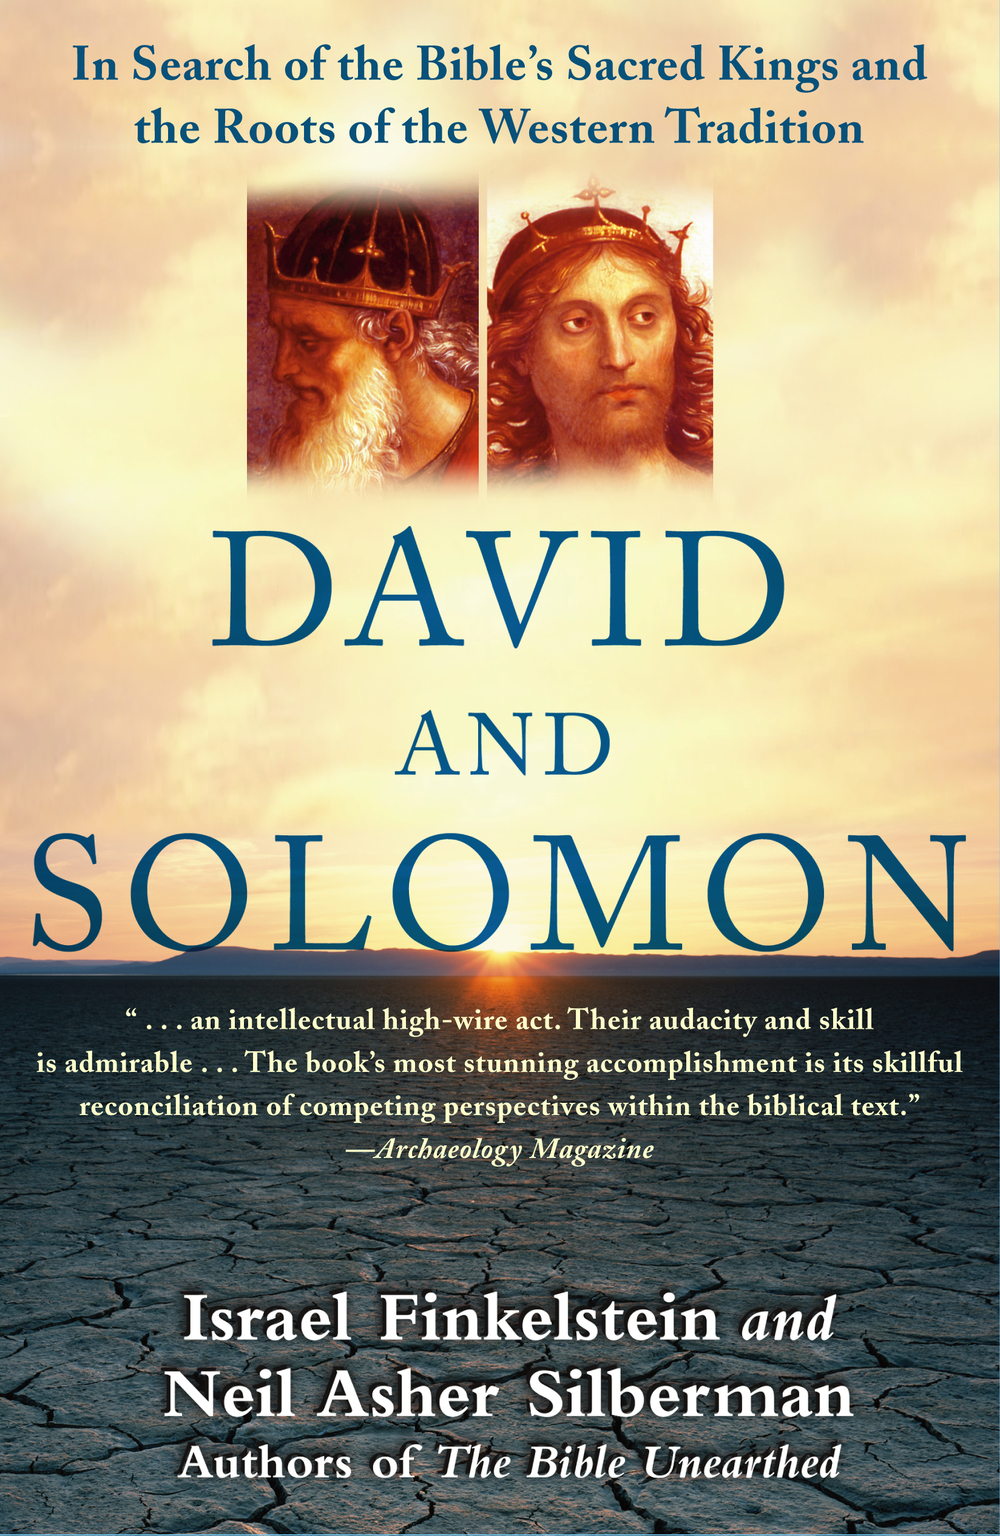 David and Solomon Finkelstein Silberman.jpg